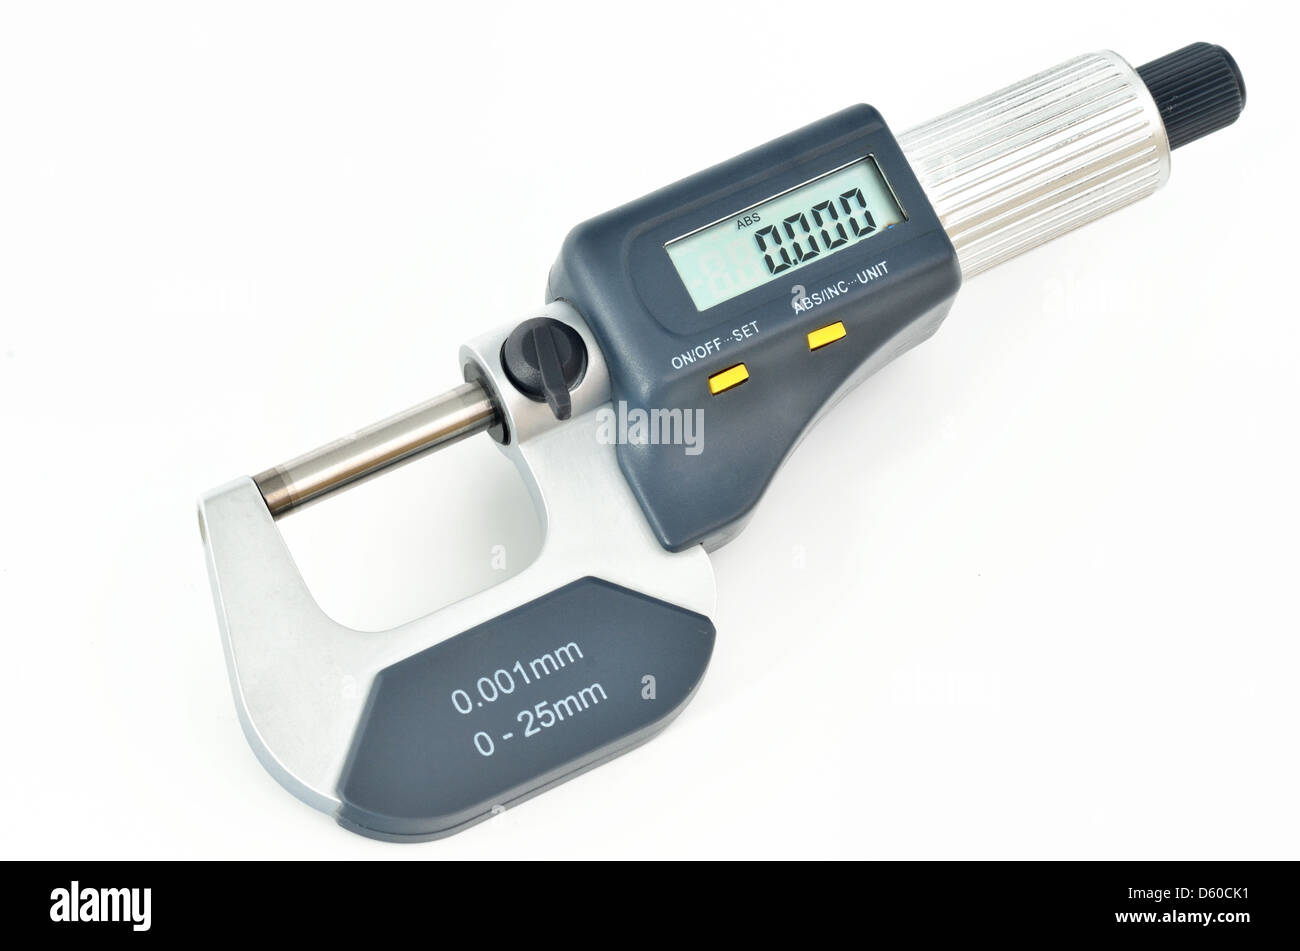 Digital micrometer - Stock Image